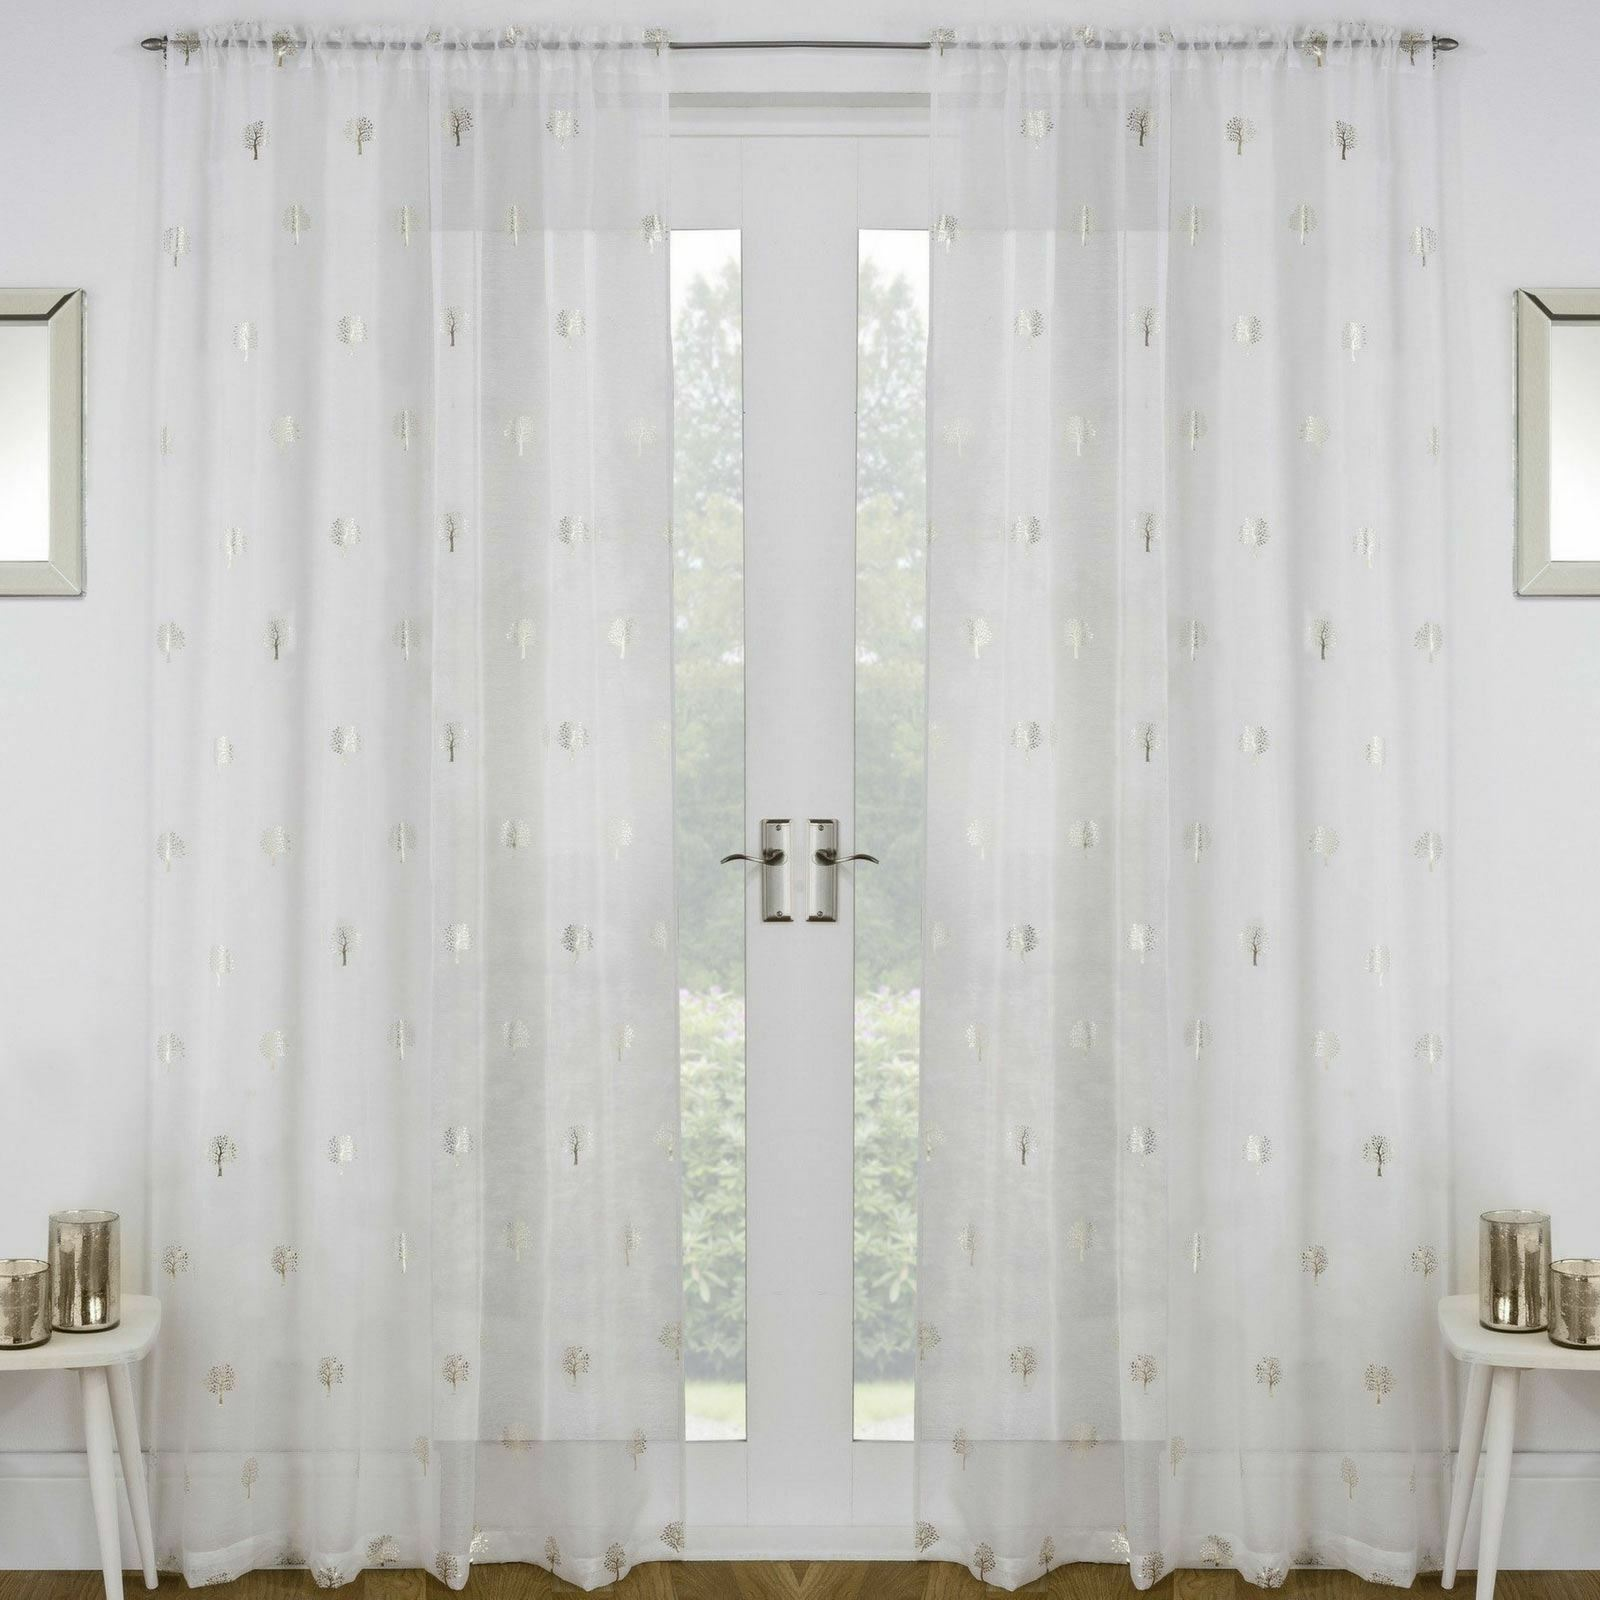 One Single HOXTON Plain Geometric Design Slot Top Header Curtain Voile Panels